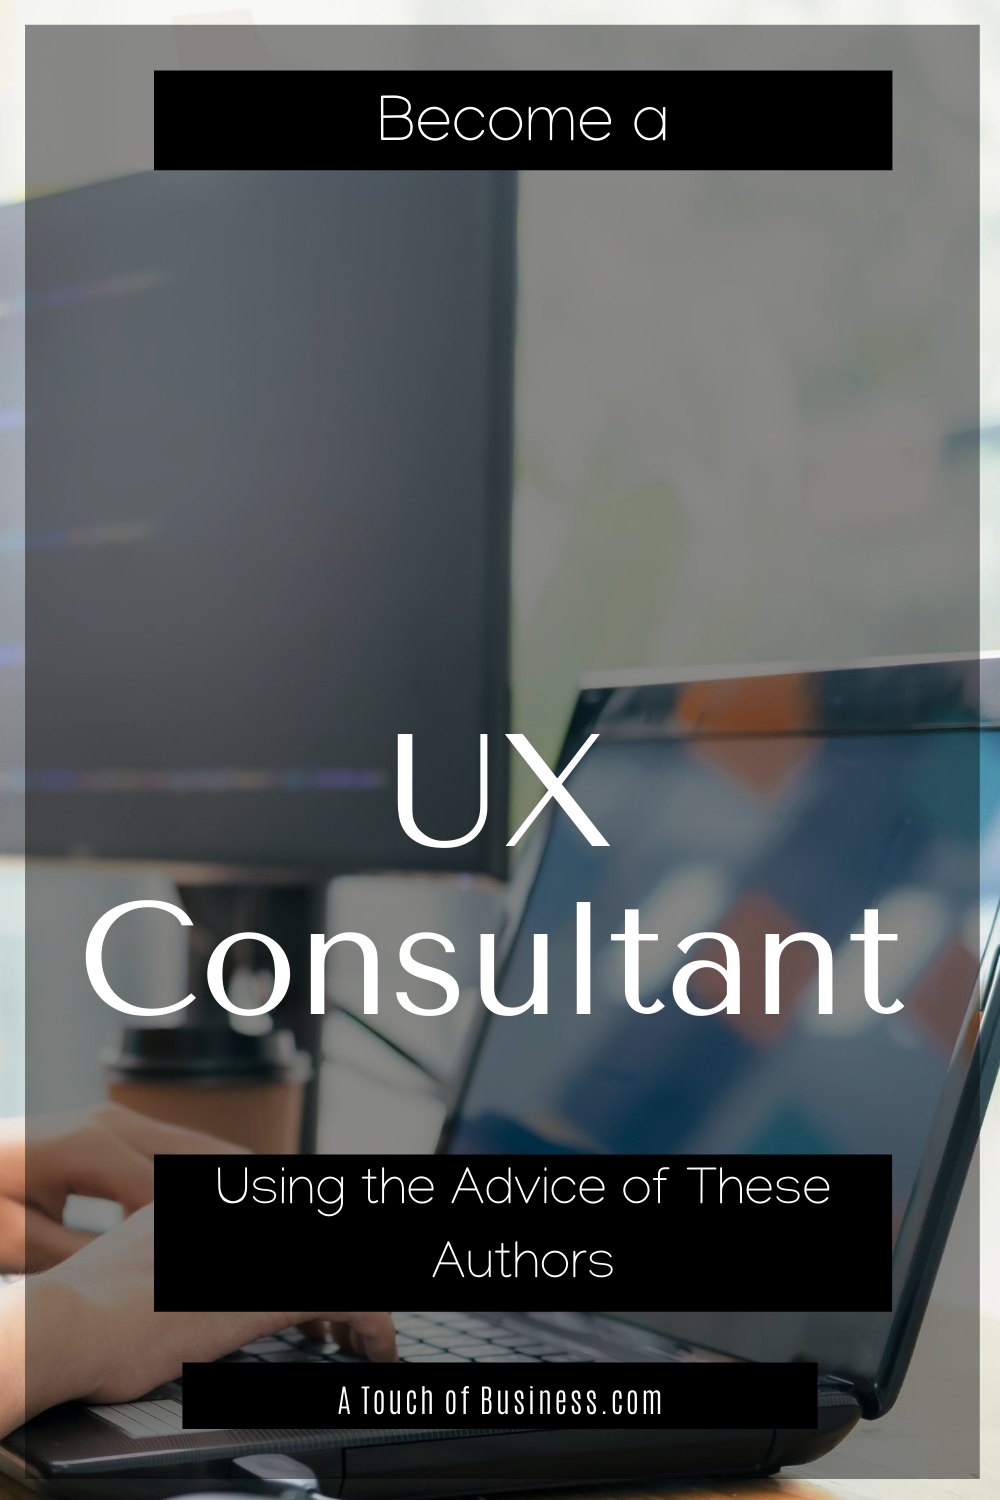 a UX Consultant Using the Advice of These Authors